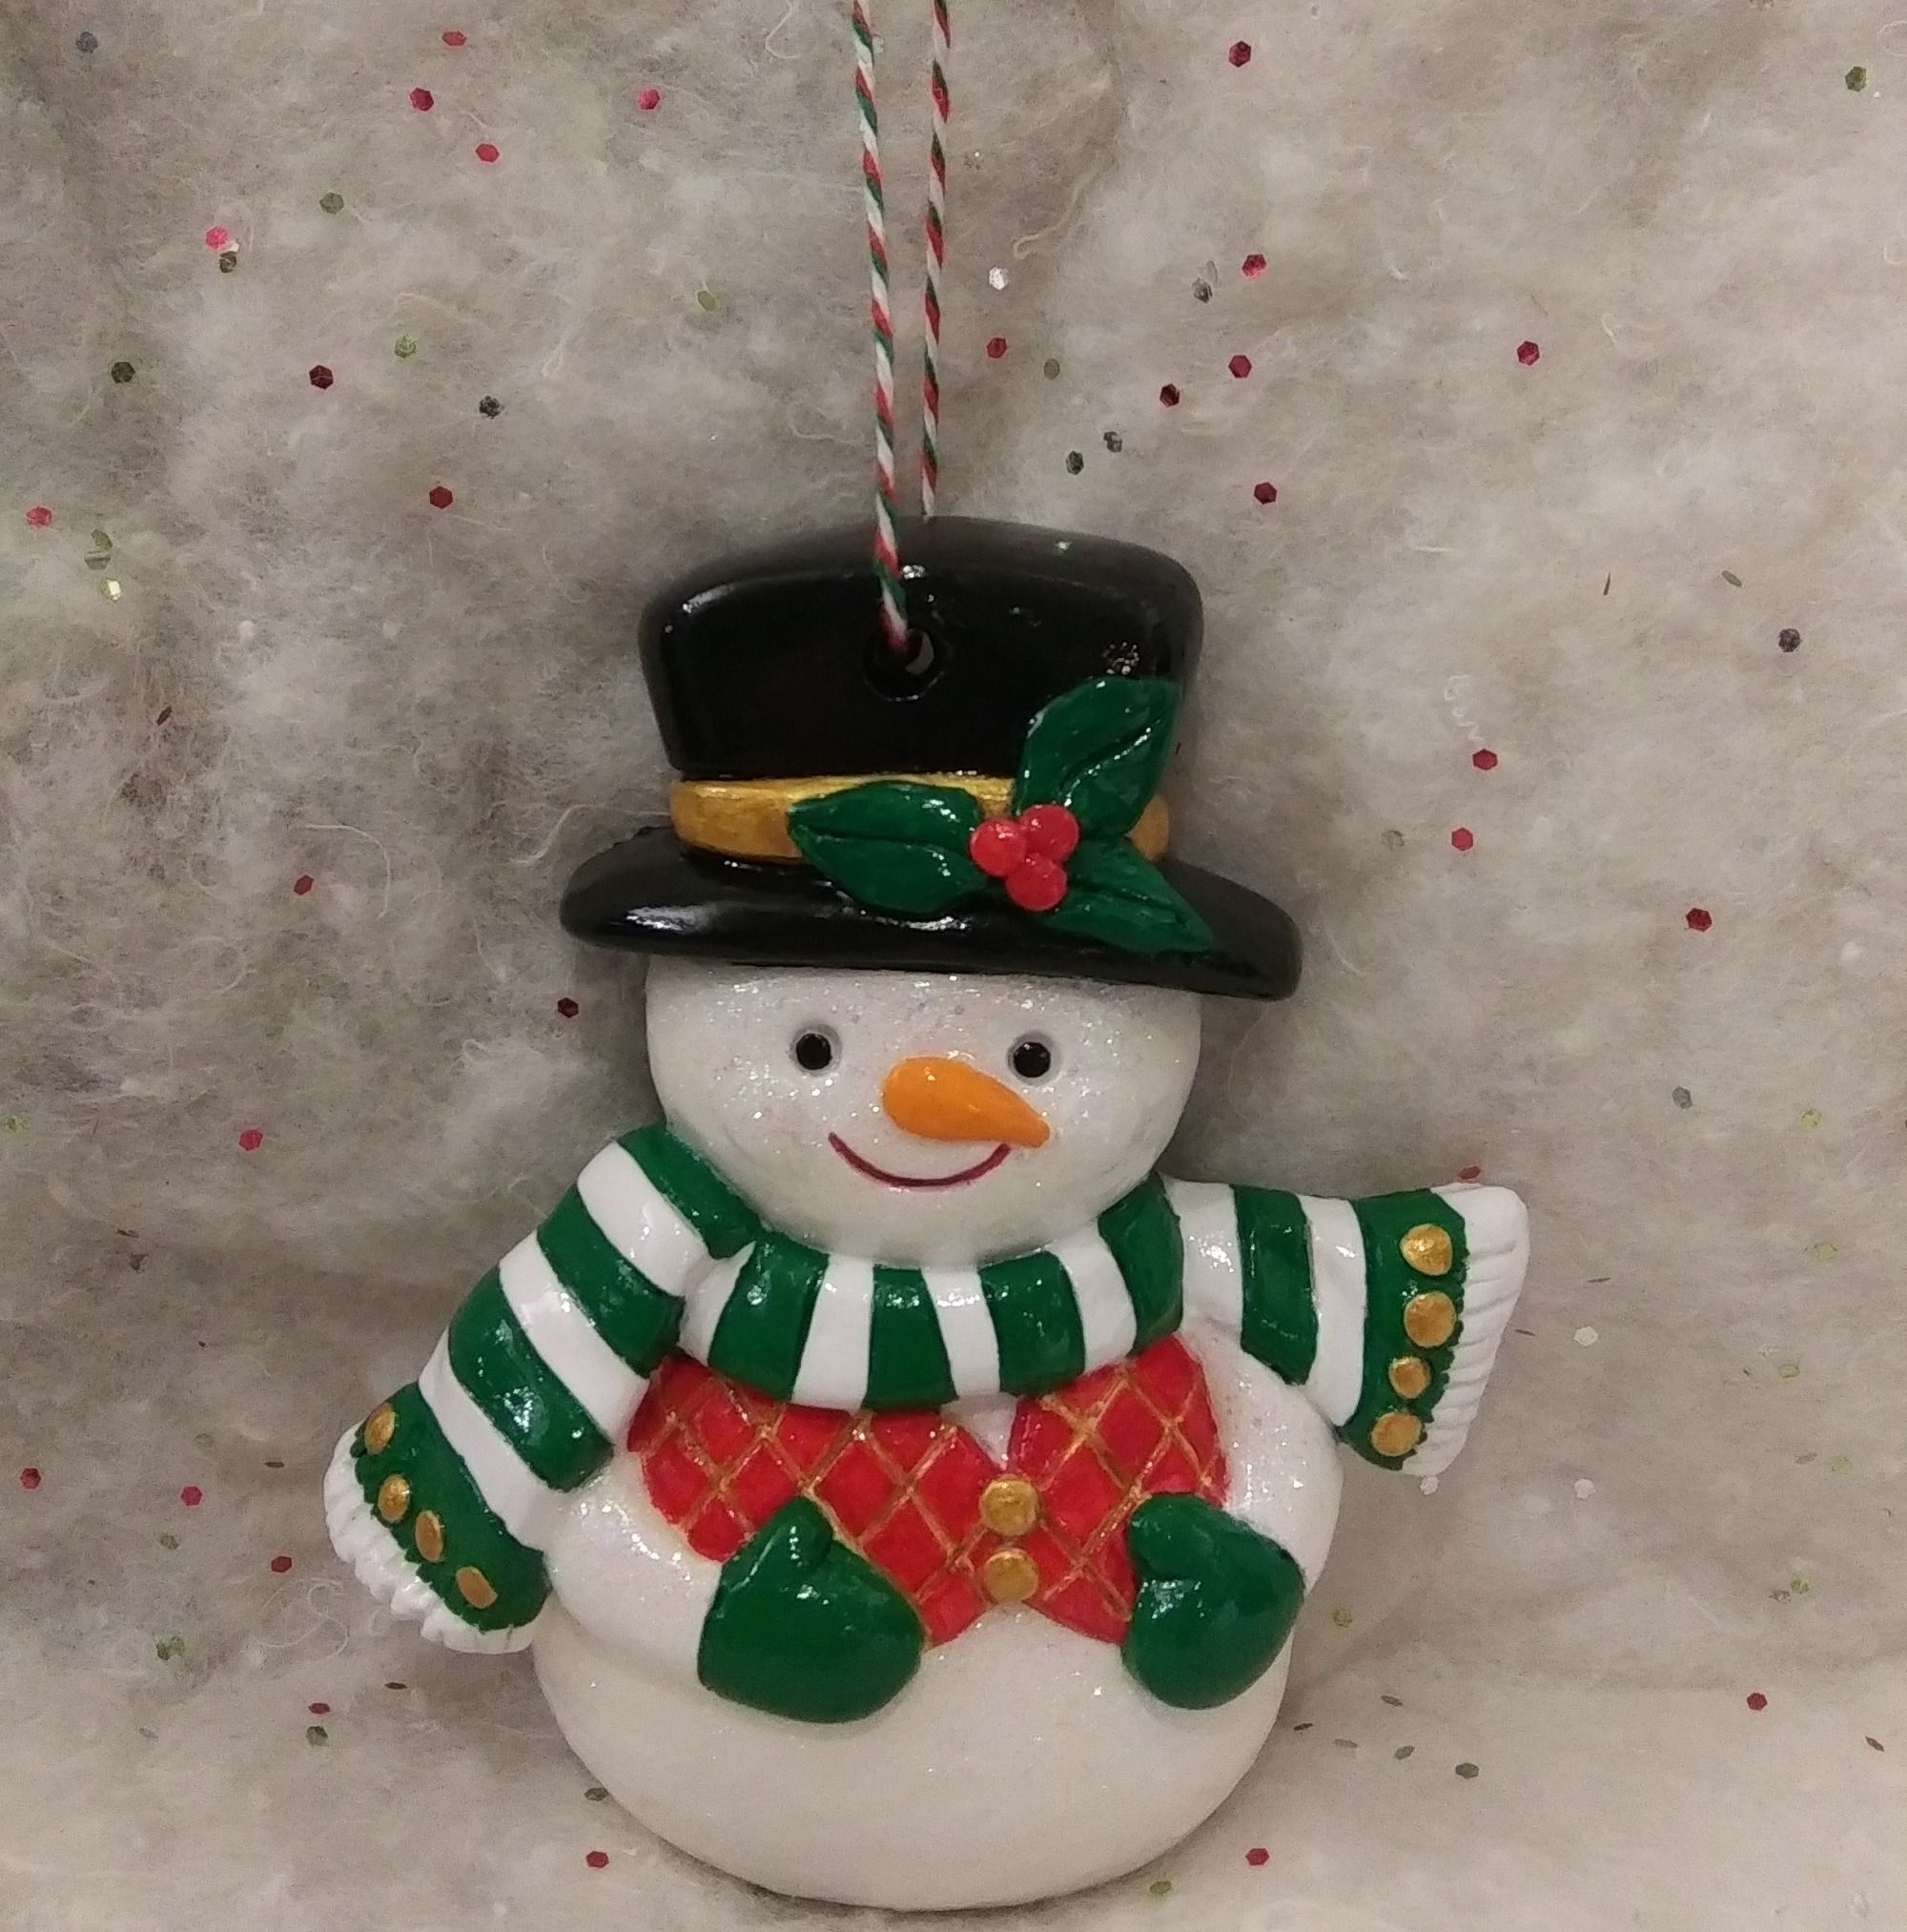 Christmas Ornament Snowman Hand Painted Snowman Ornament Etsy Christmas Ornaments Painted Christmas Ornaments Hand Painted Ornaments